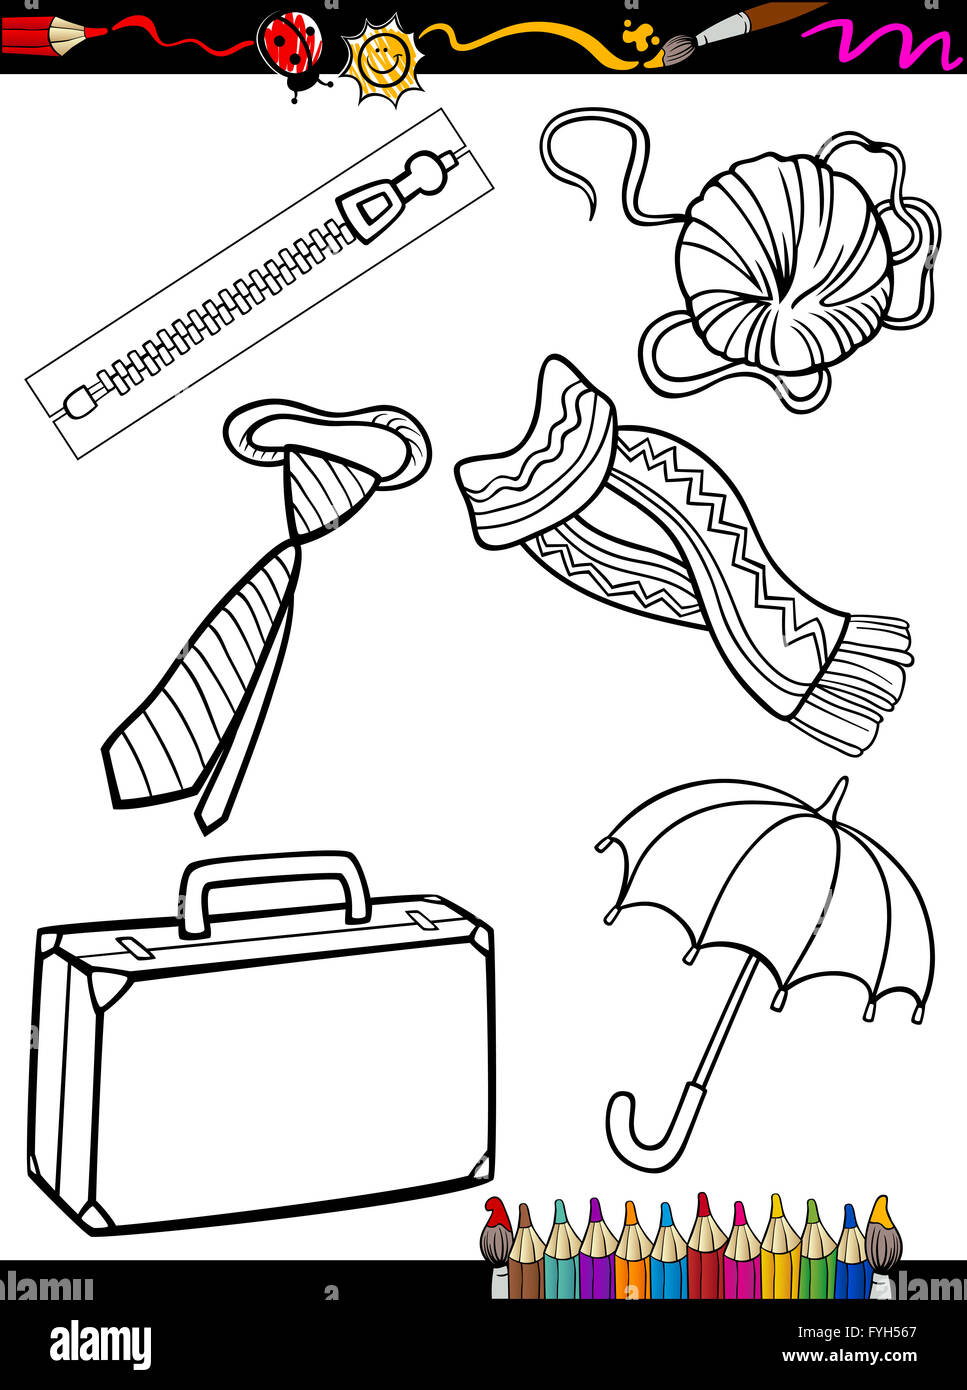 cartoon objects coloring page - Stock Image